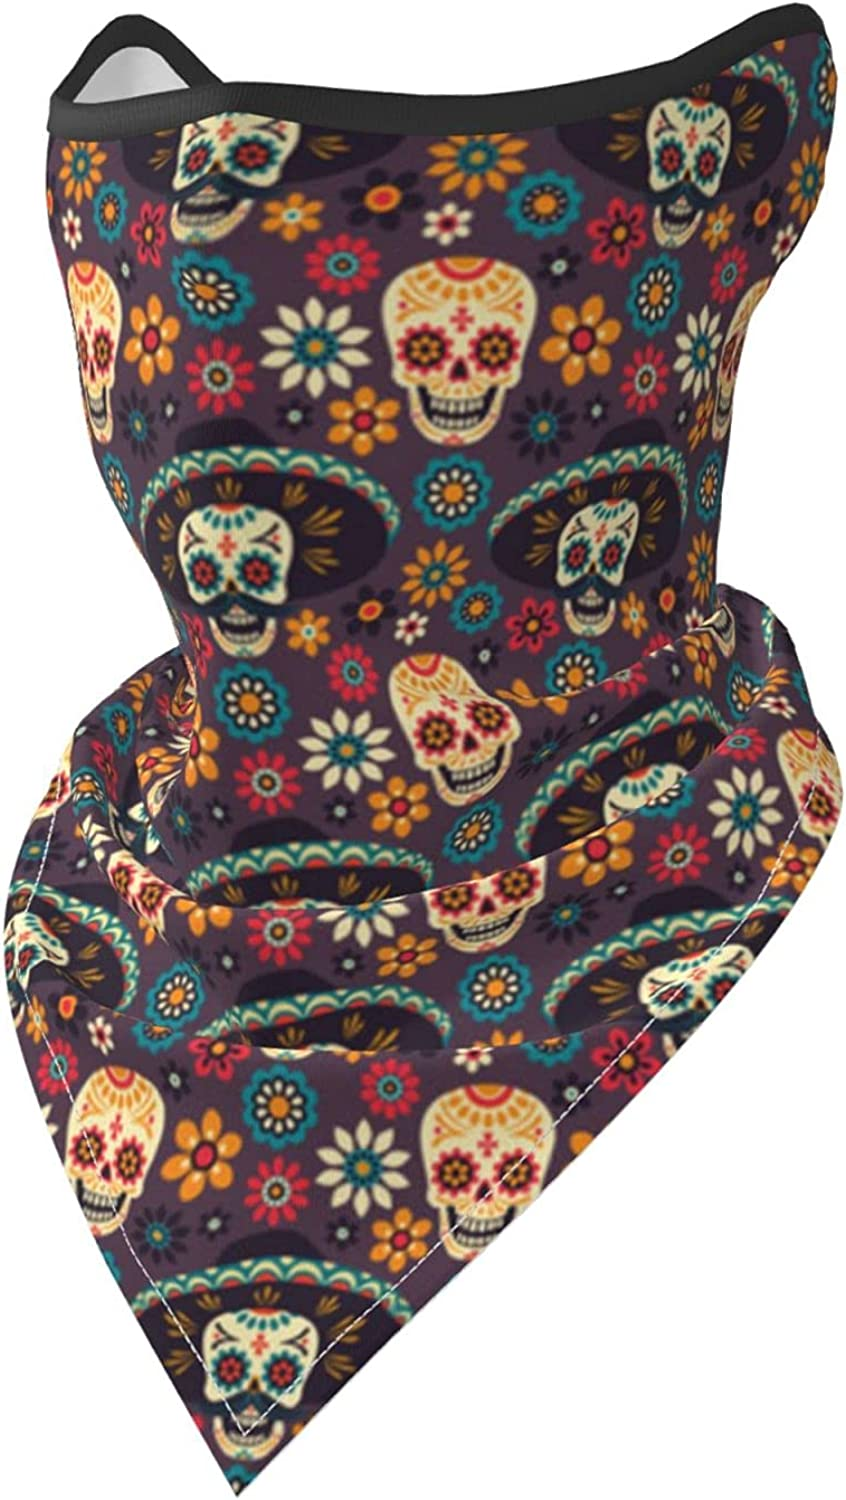 Sugar Skulls and Flowers Breathable Bandana Face Mask Neck Gaiter Windproof Sports Mask Scarf Headwear for Men Women Outdoor Hiking Cycling Running Motorcycling